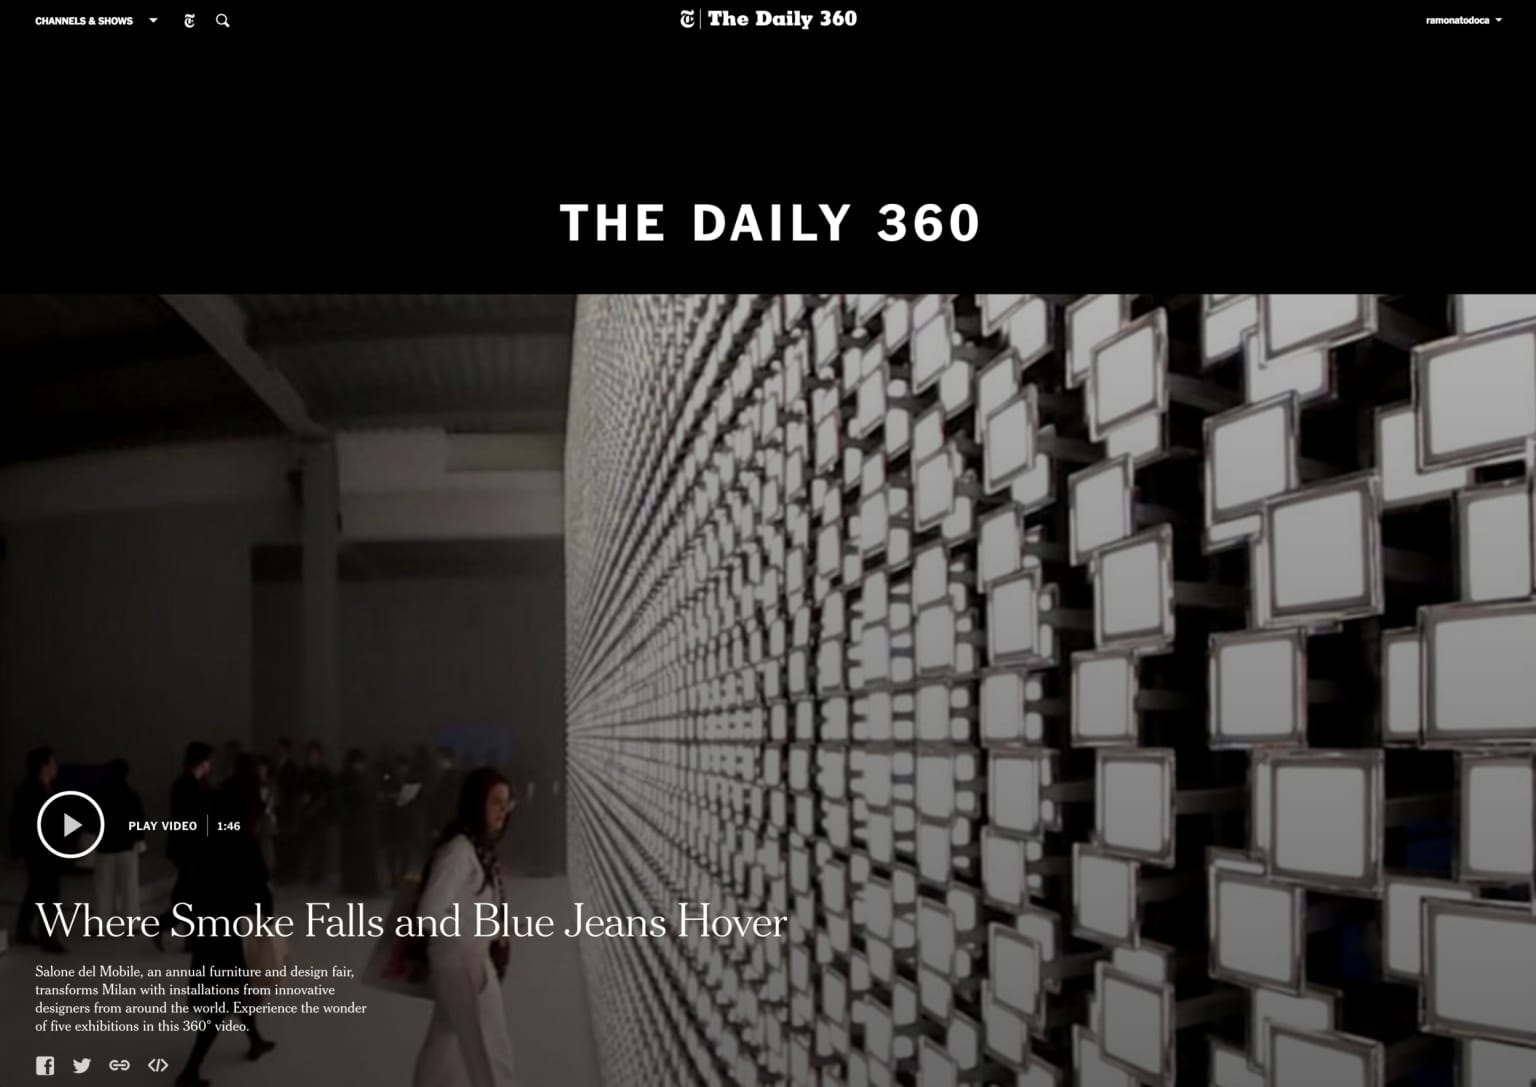 NYTimes: The Daily360